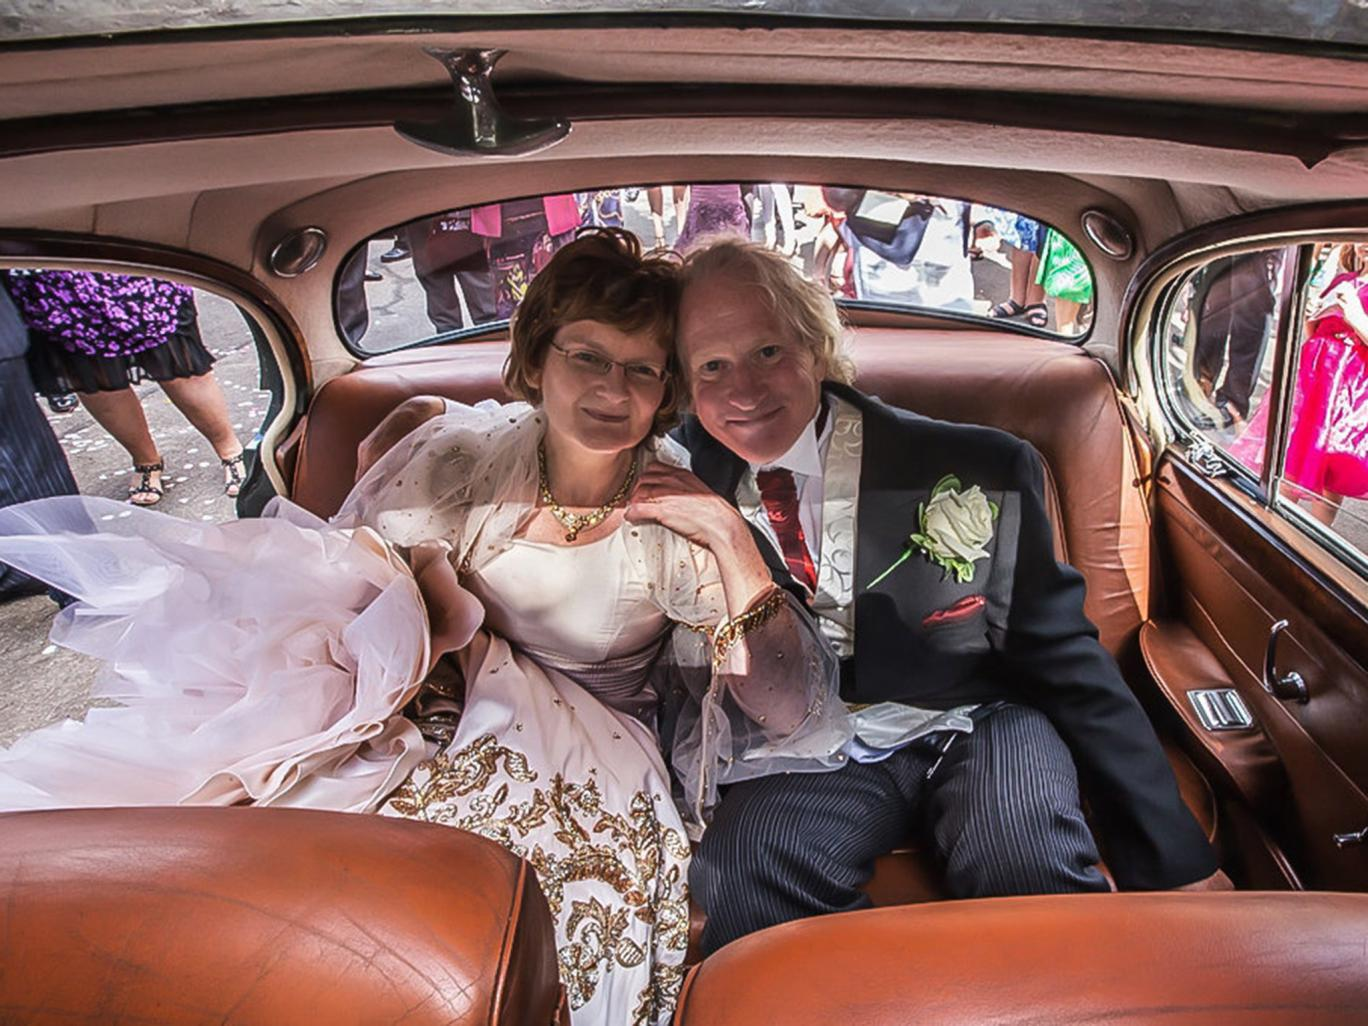 married-after-40-years-3-0.jpg